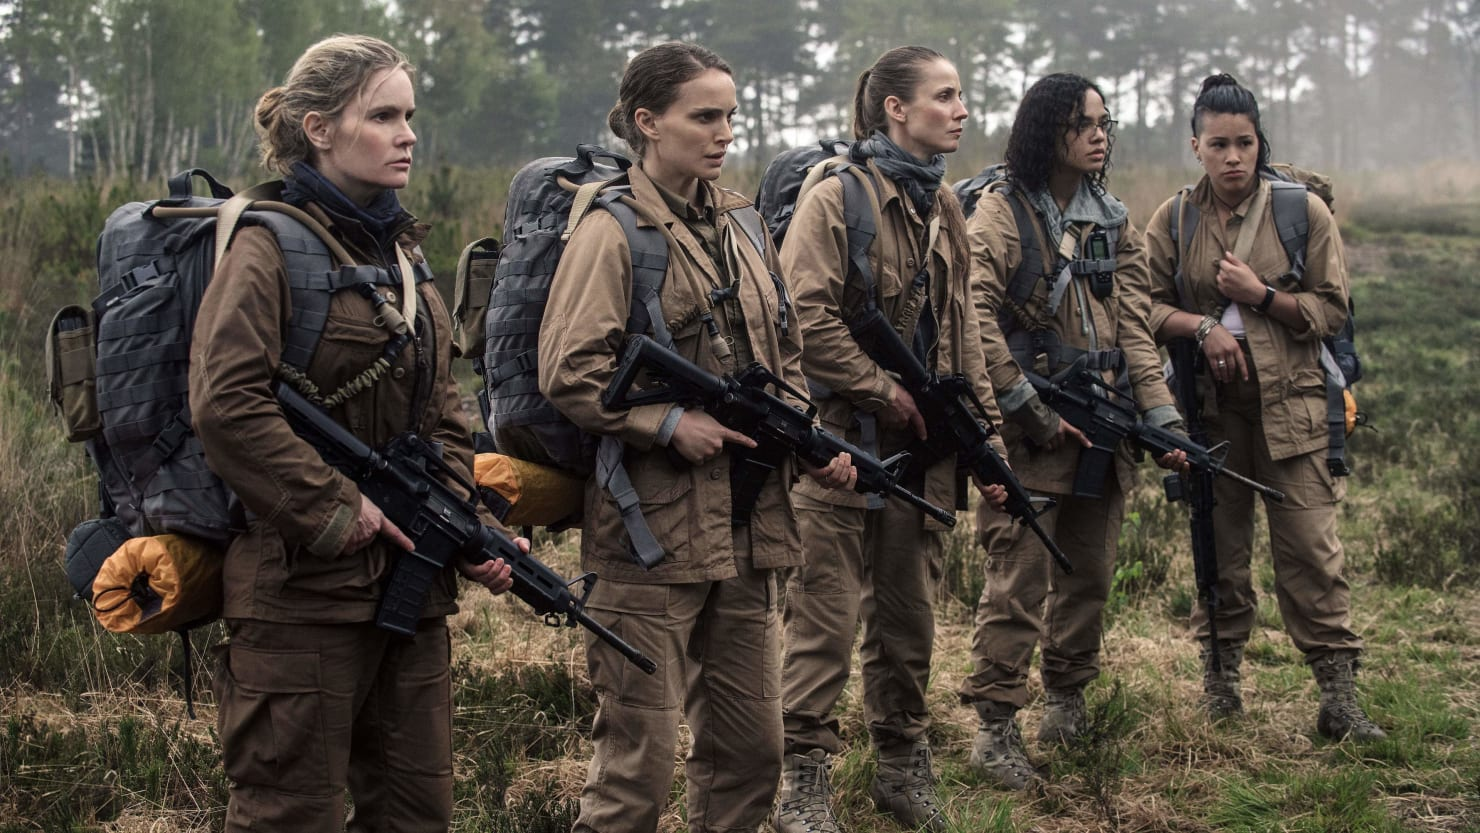 'Annihilation' Is Mind-Blowing, and the Best Sci-Fi Film in Years